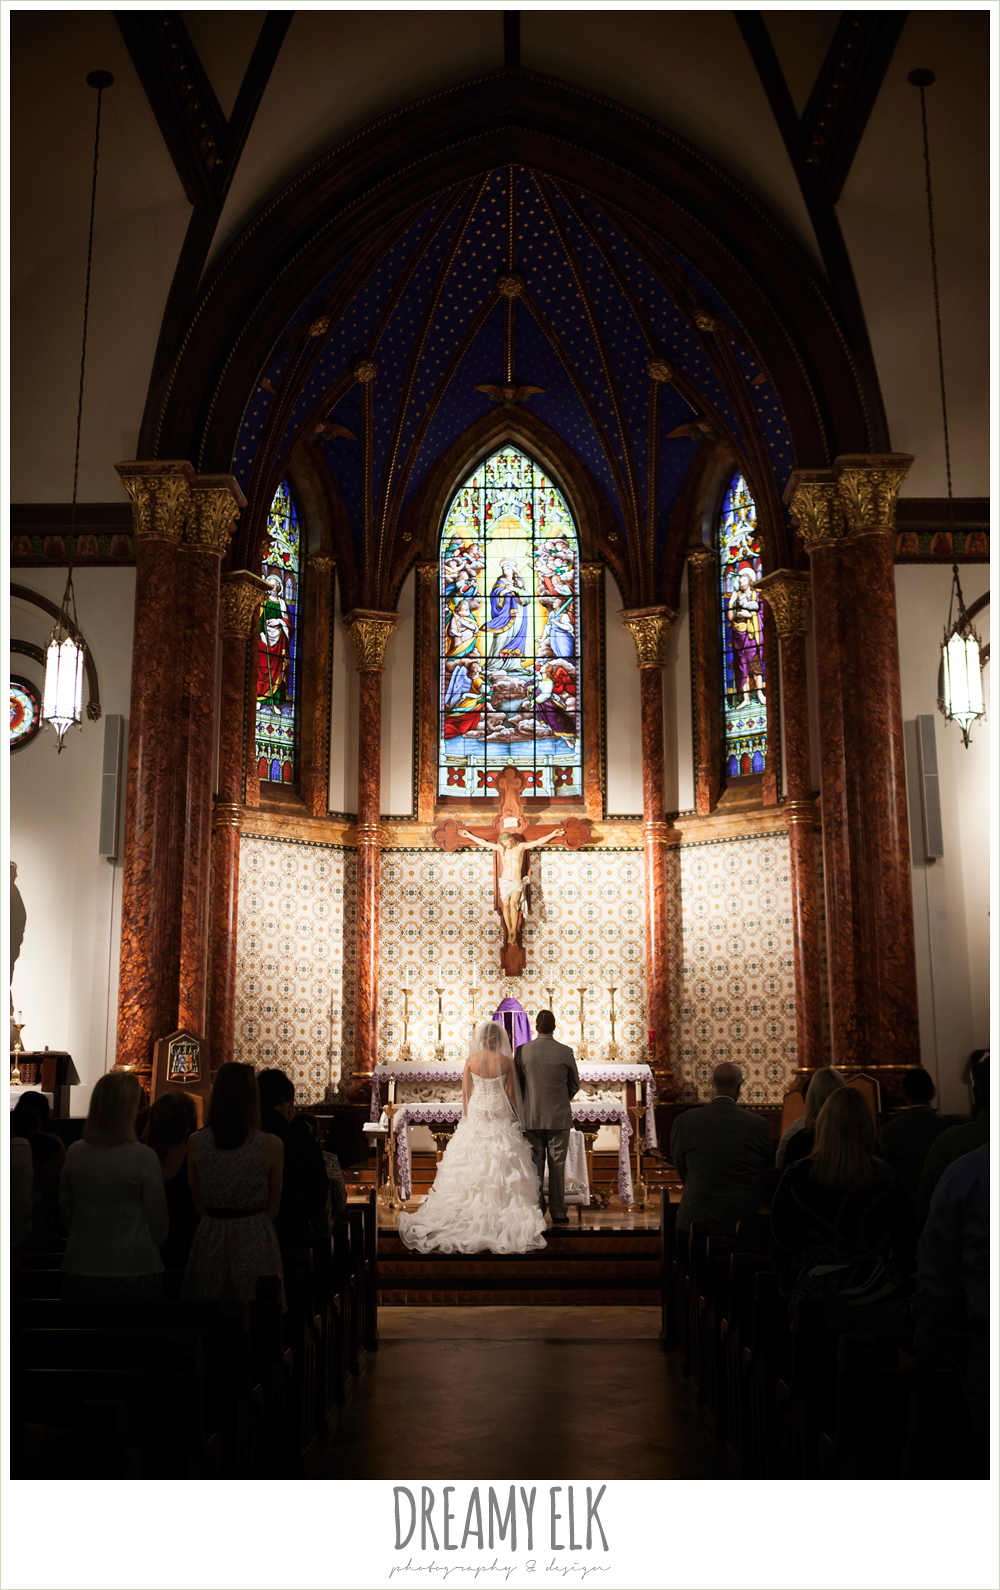 st mary's cathedral wedding ceremony, downtown austin spring wedding {dreamy elk photography and design}